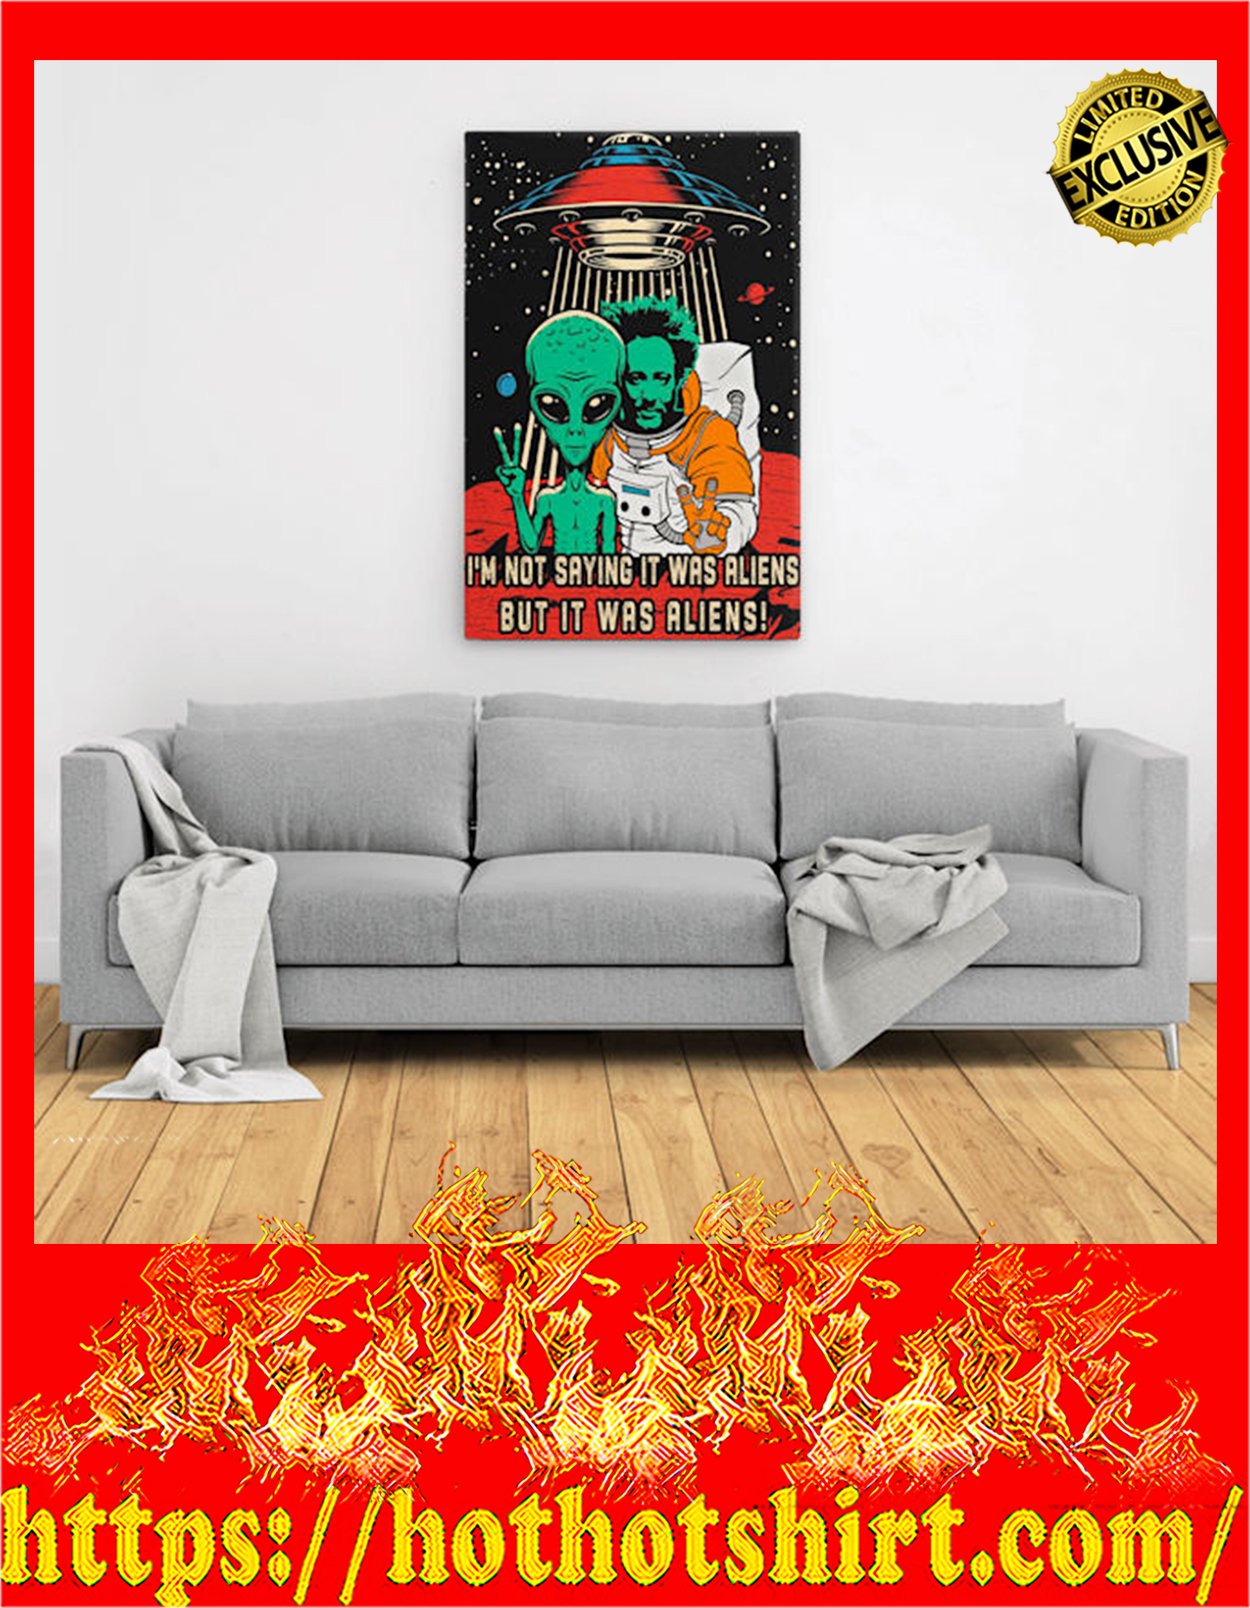 I'm not saying it was aliens but it was aliens canvas prints - Large